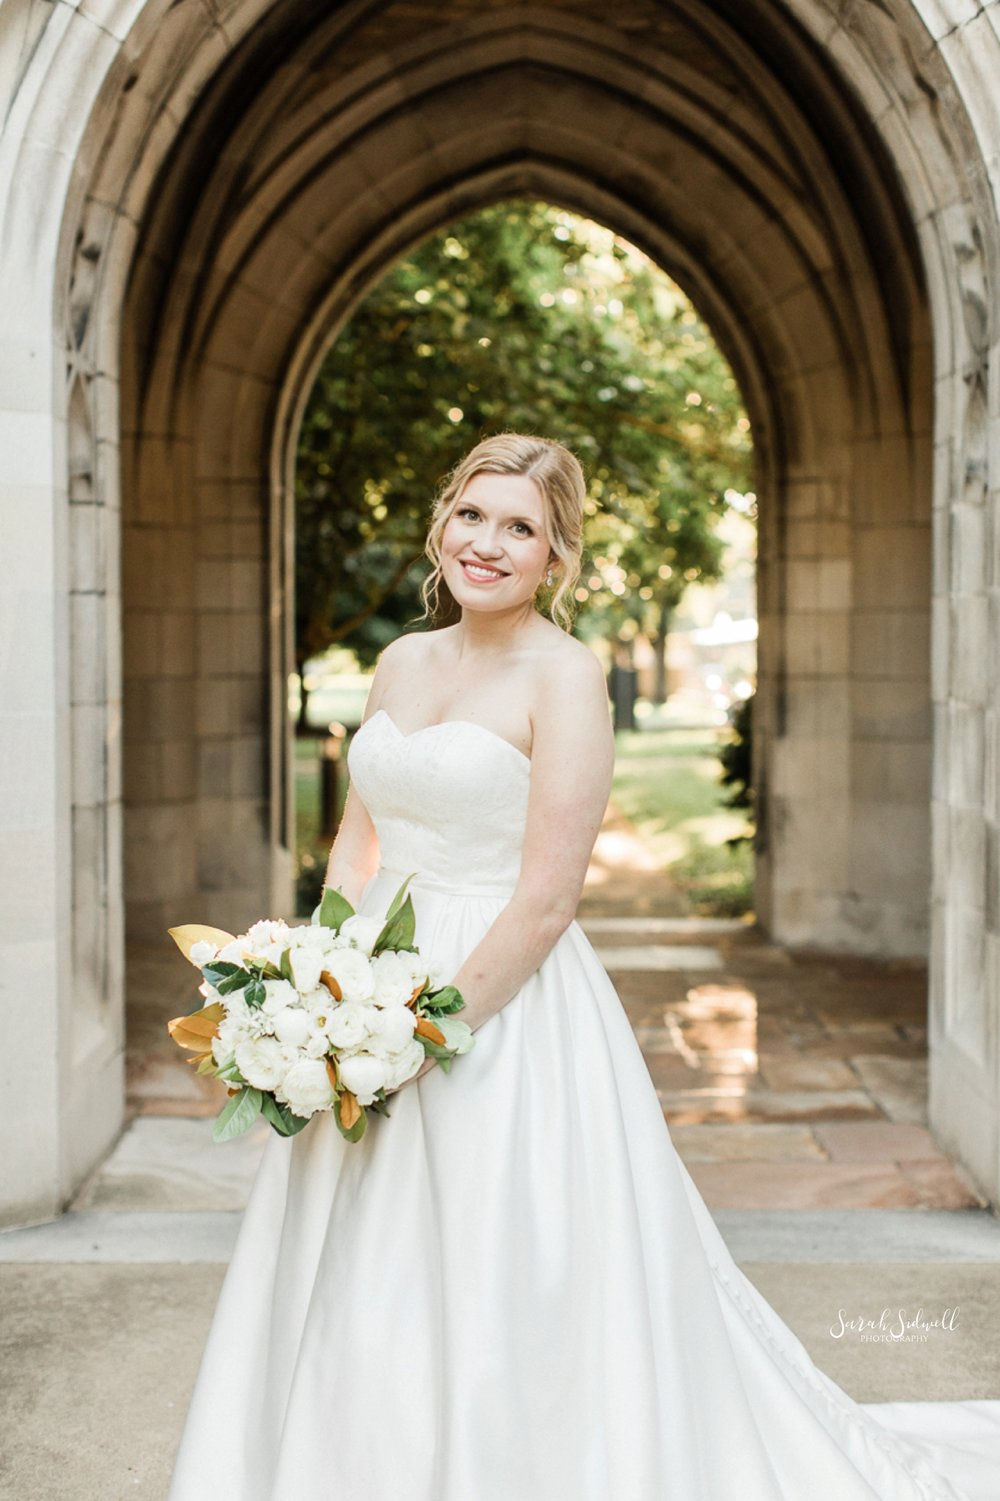 A bride stands under an arch holding her flowers.